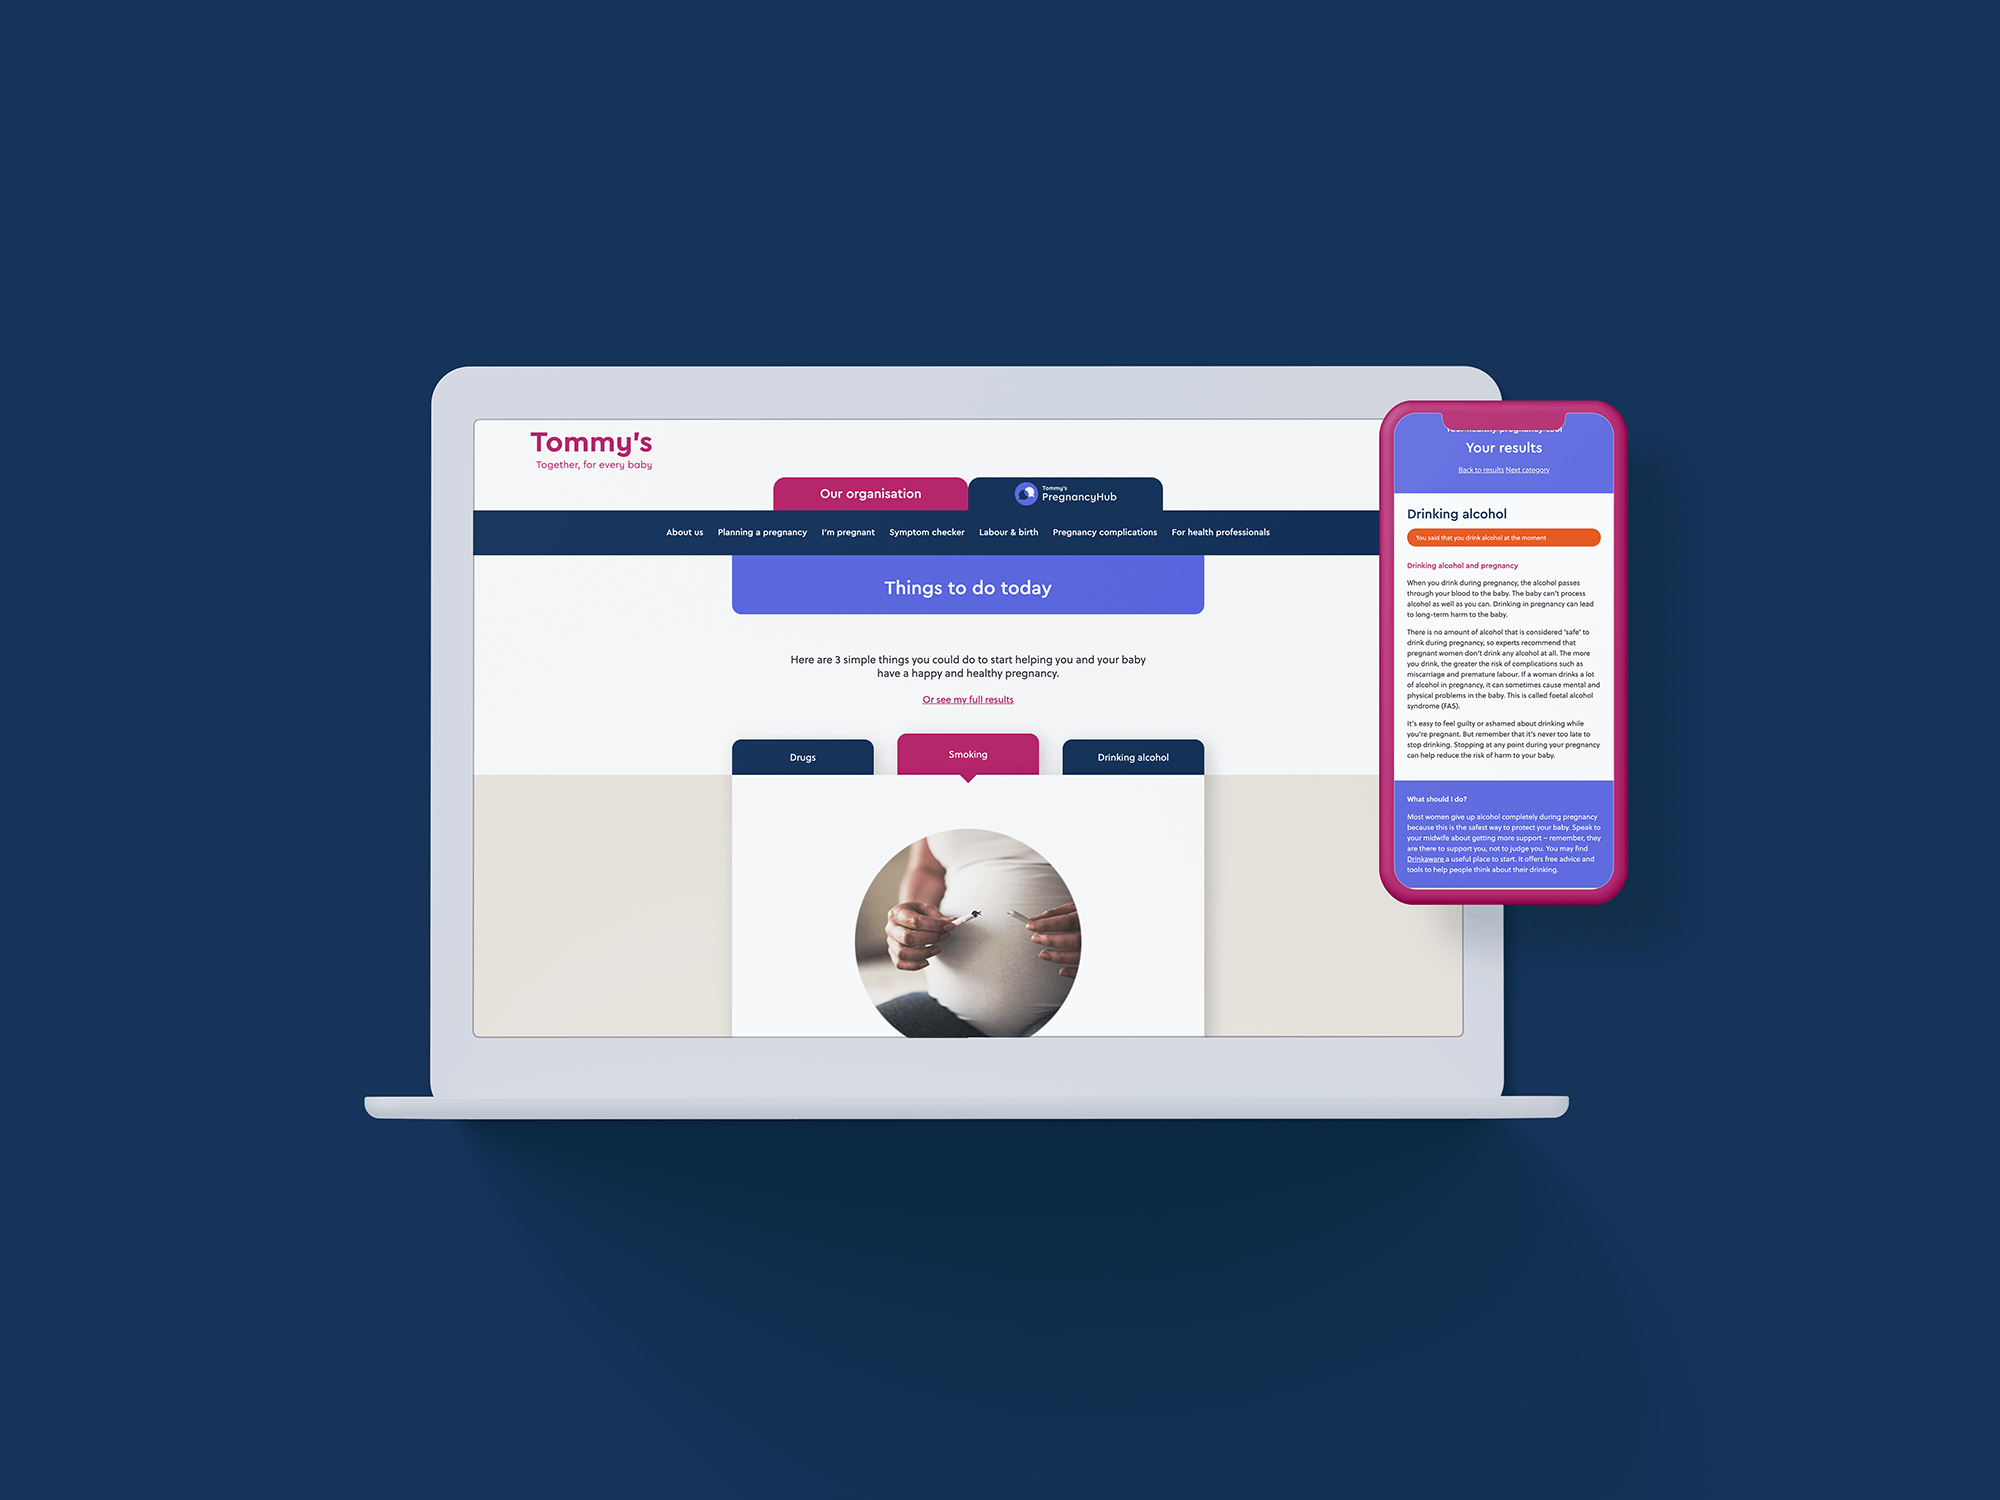 Tommy's safer pregnancy web app shown on a laptop and mobile screen